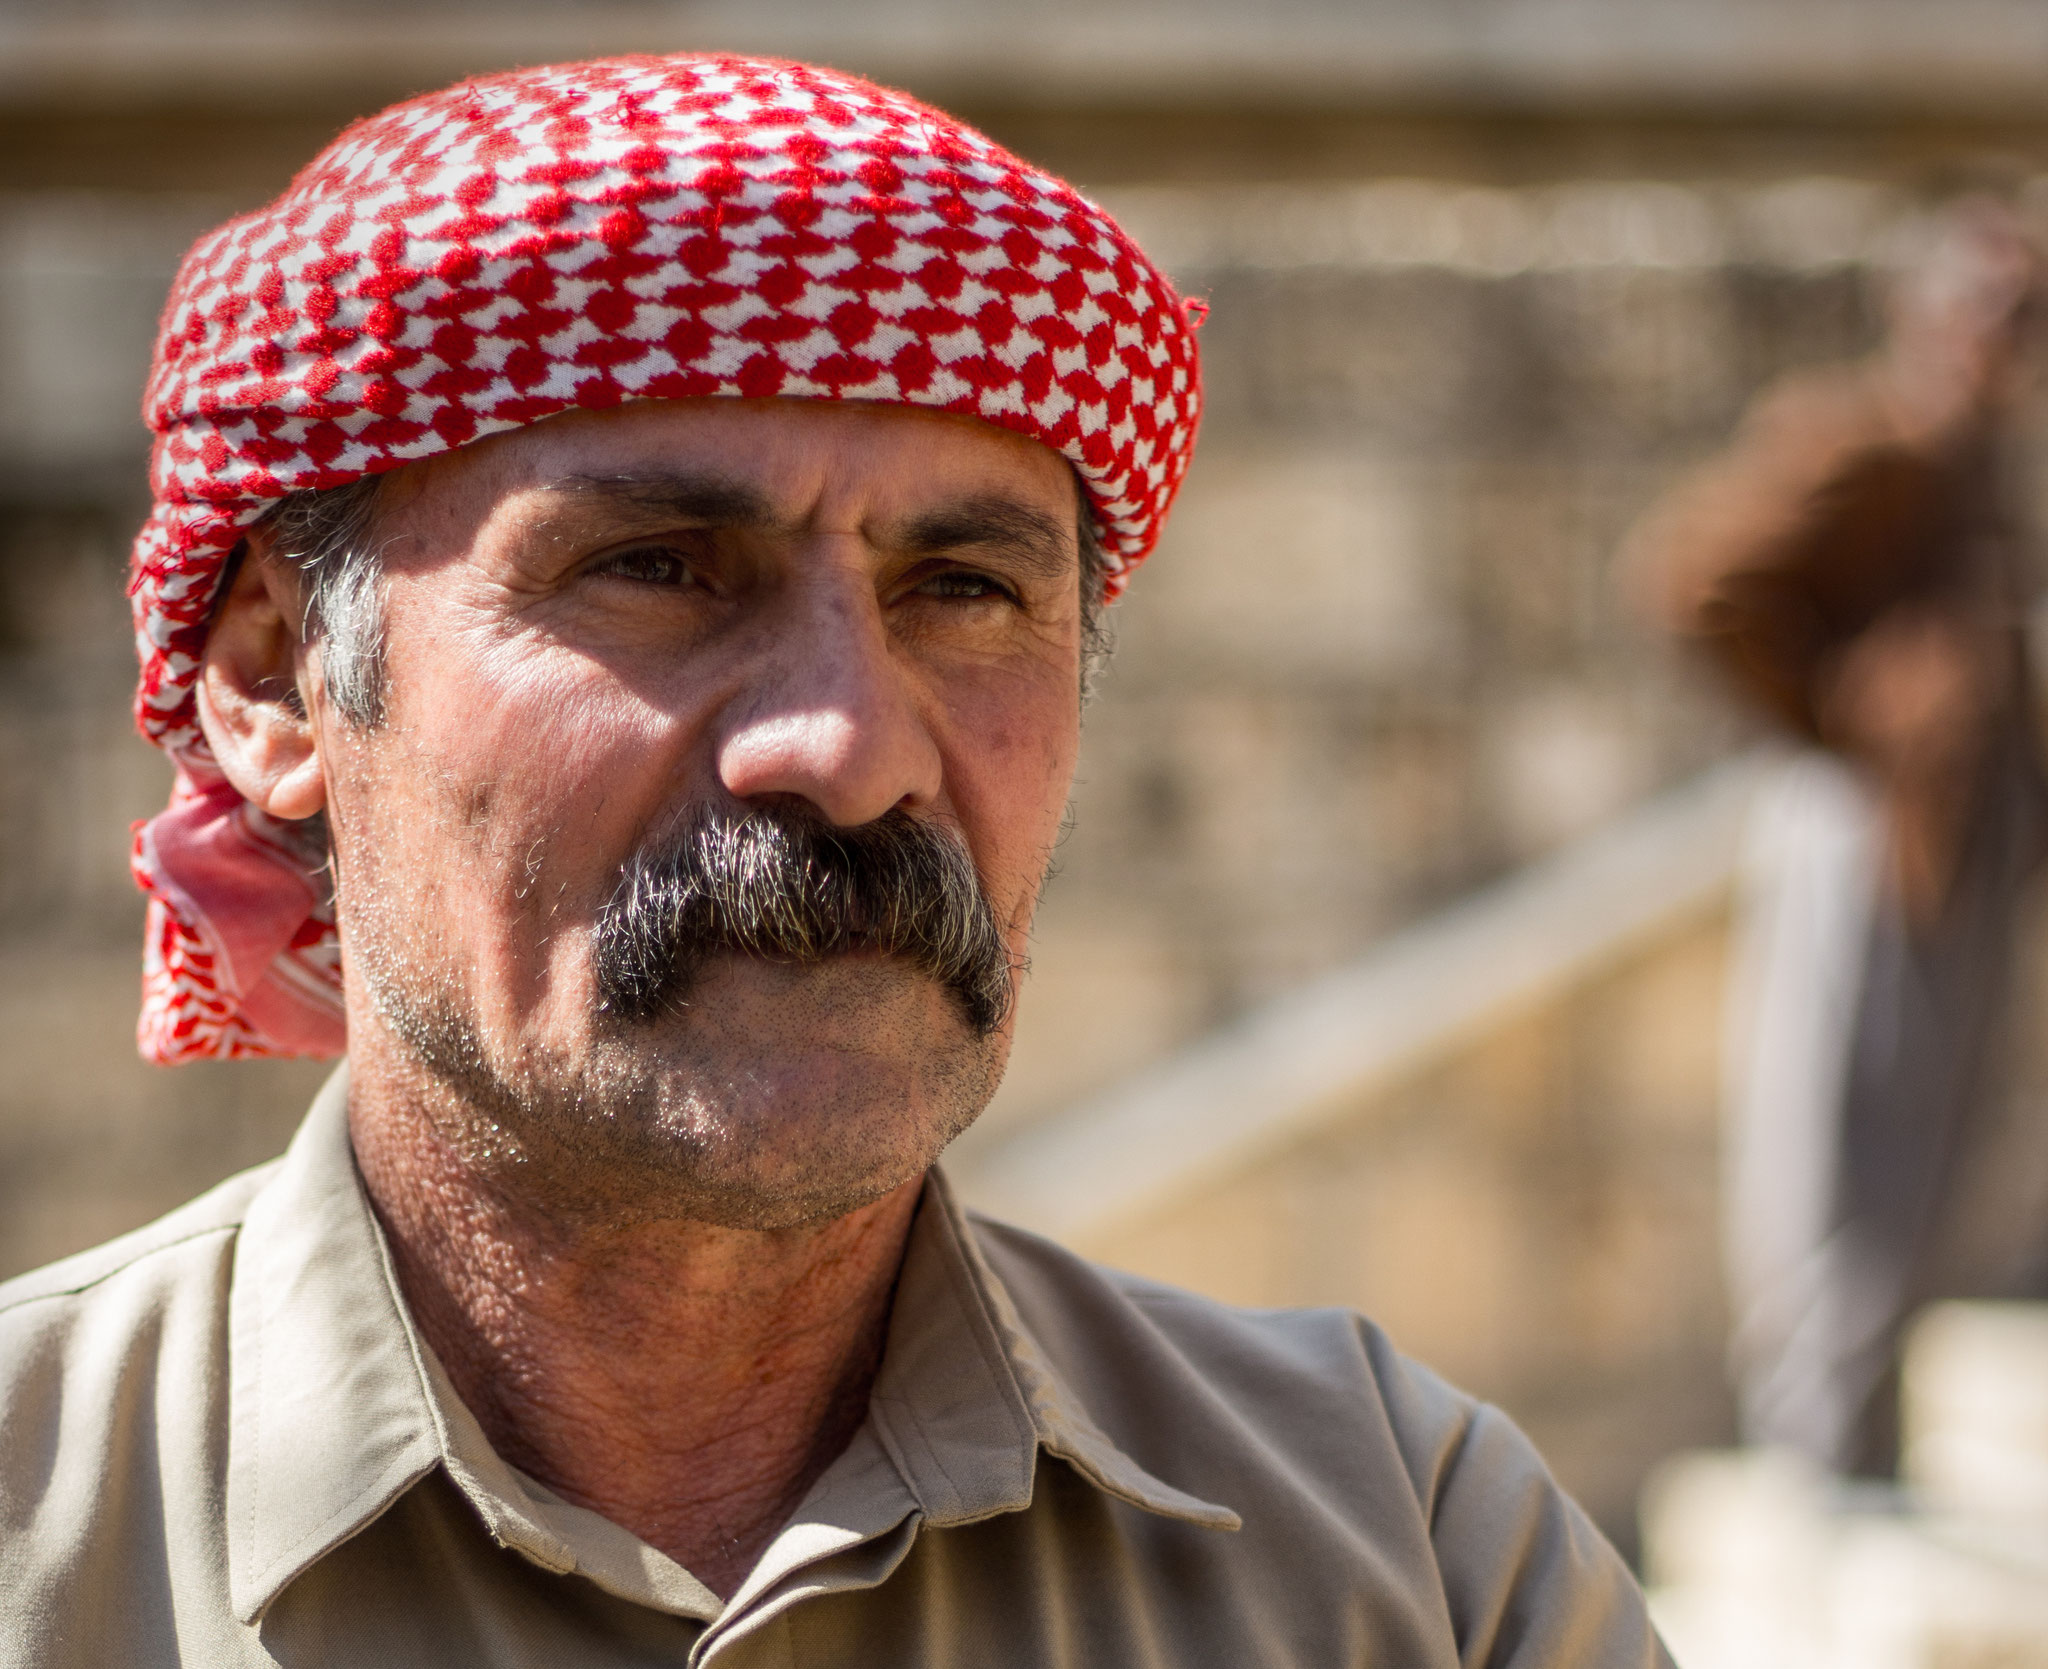 Man in traditional Kurdish dress in the Yazidi sanctuary in Lalish, Kurdistan/Iraq. March 2017.